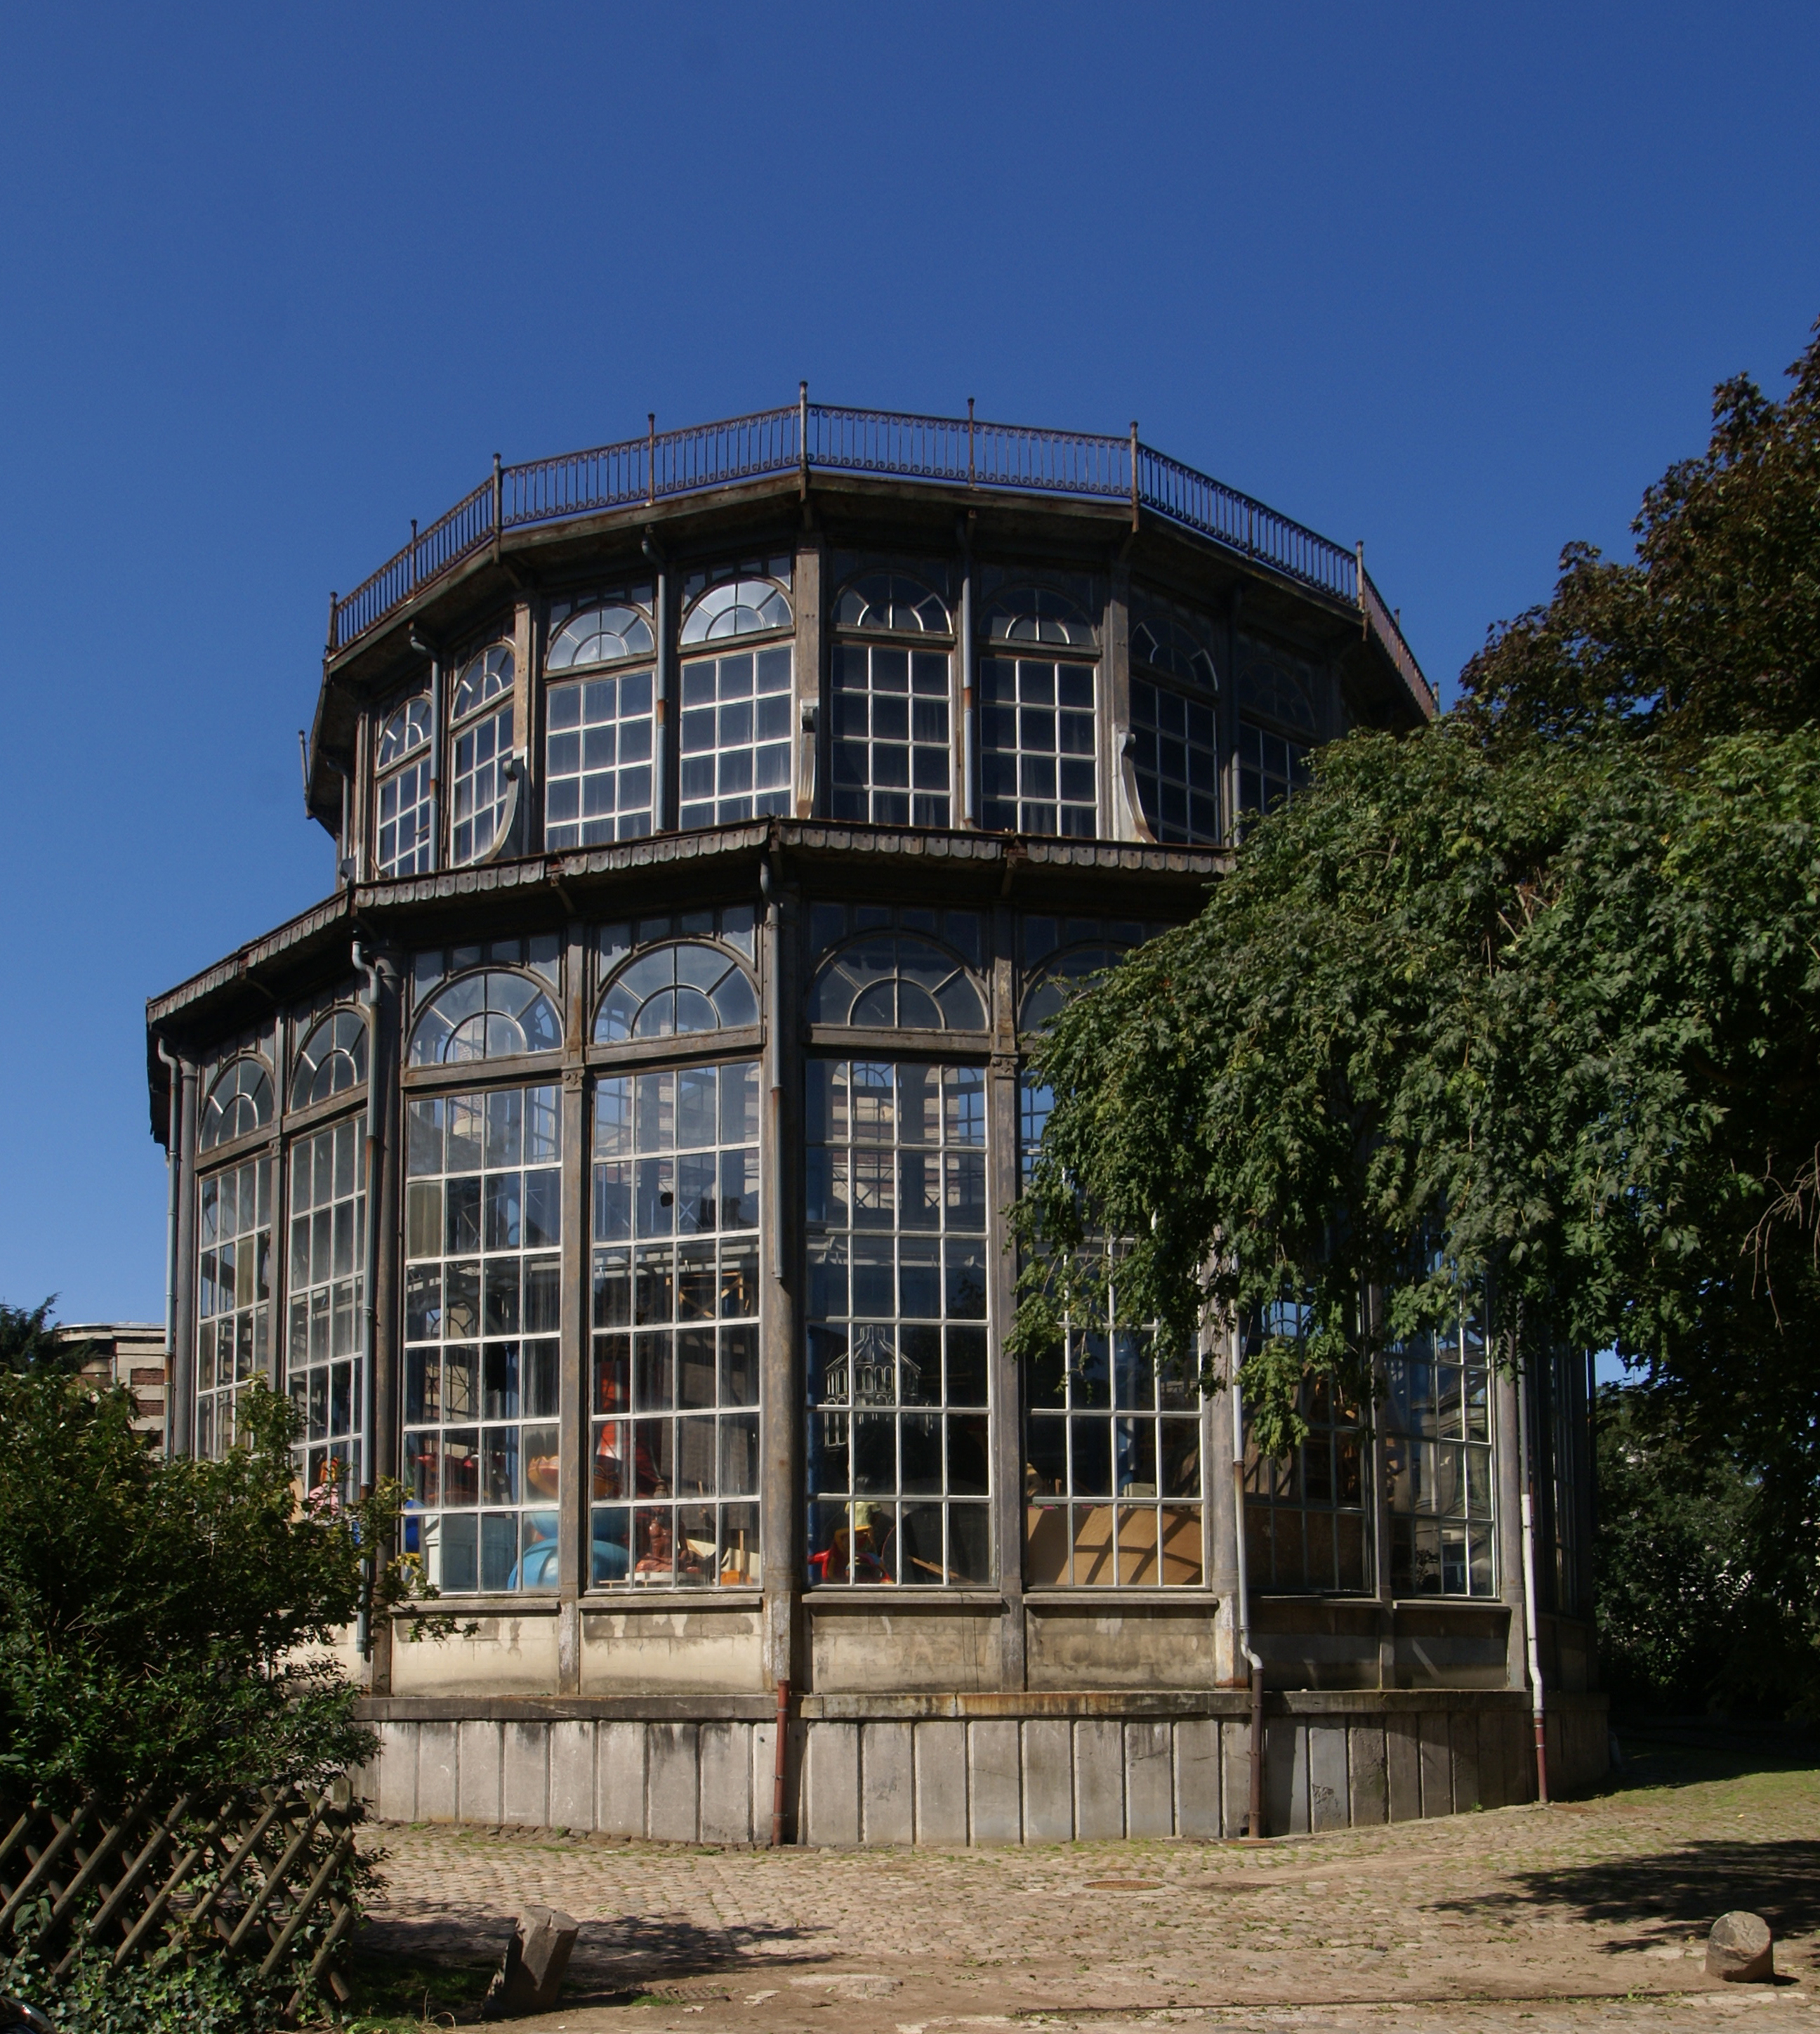 fichier lille rijsel palais rameau jardin d 39 wikip dia. Black Bedroom Furniture Sets. Home Design Ideas